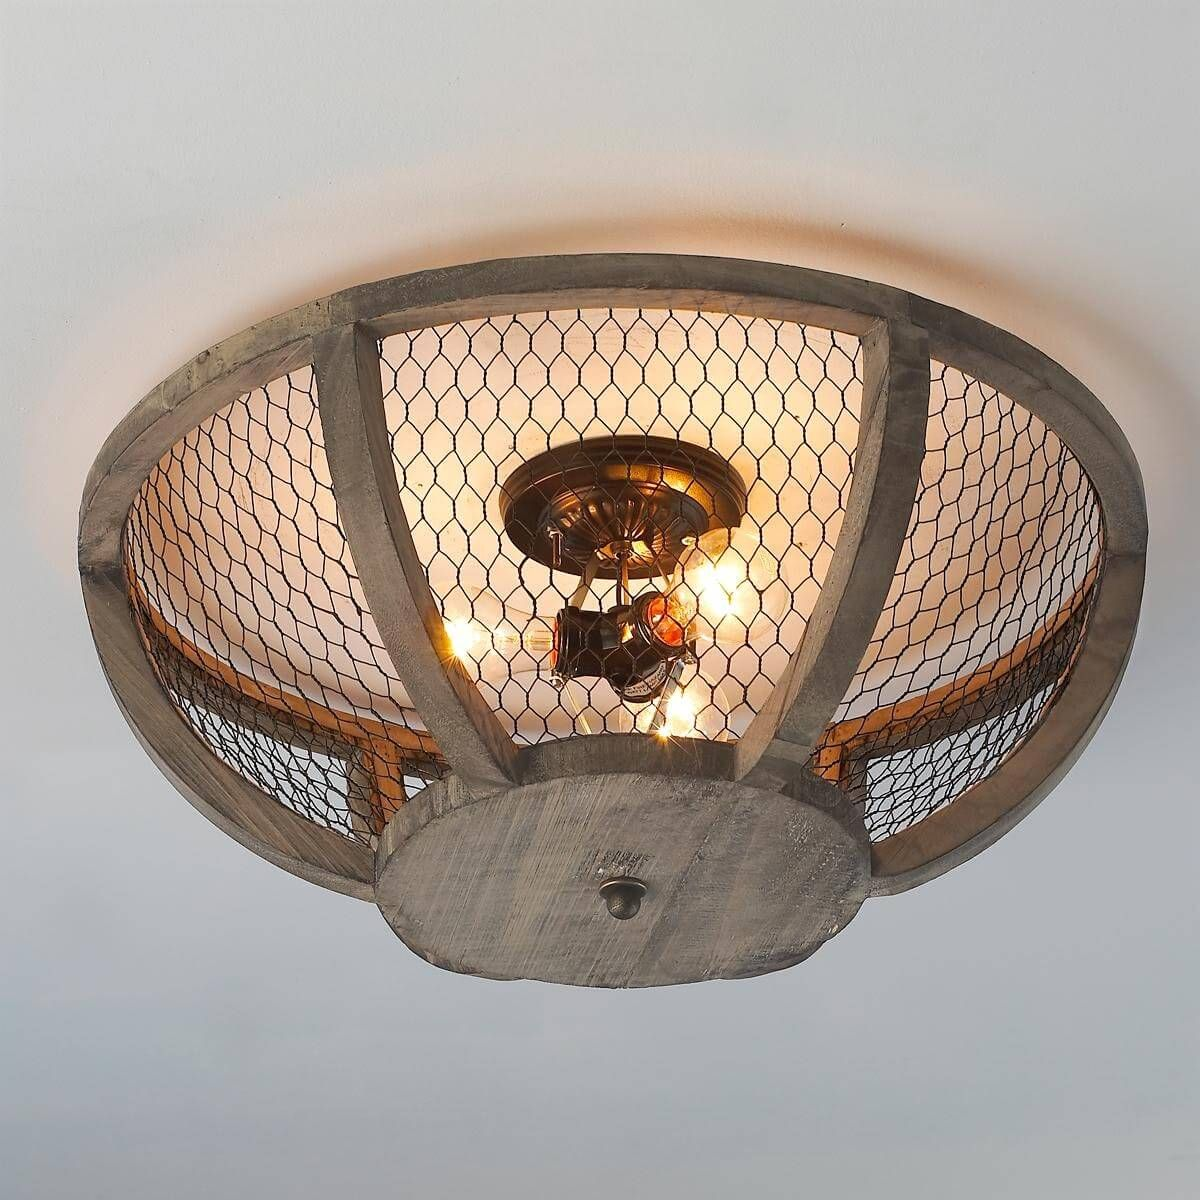 36 Farmhouse Lighting Ideas to Brighten Up Your Space in a Charming     36 Farmhouse Lighting Ideas to Brighten Up Your Space in a Charming Way  Ceiling  Light Fixture With Chicken Wire Shade